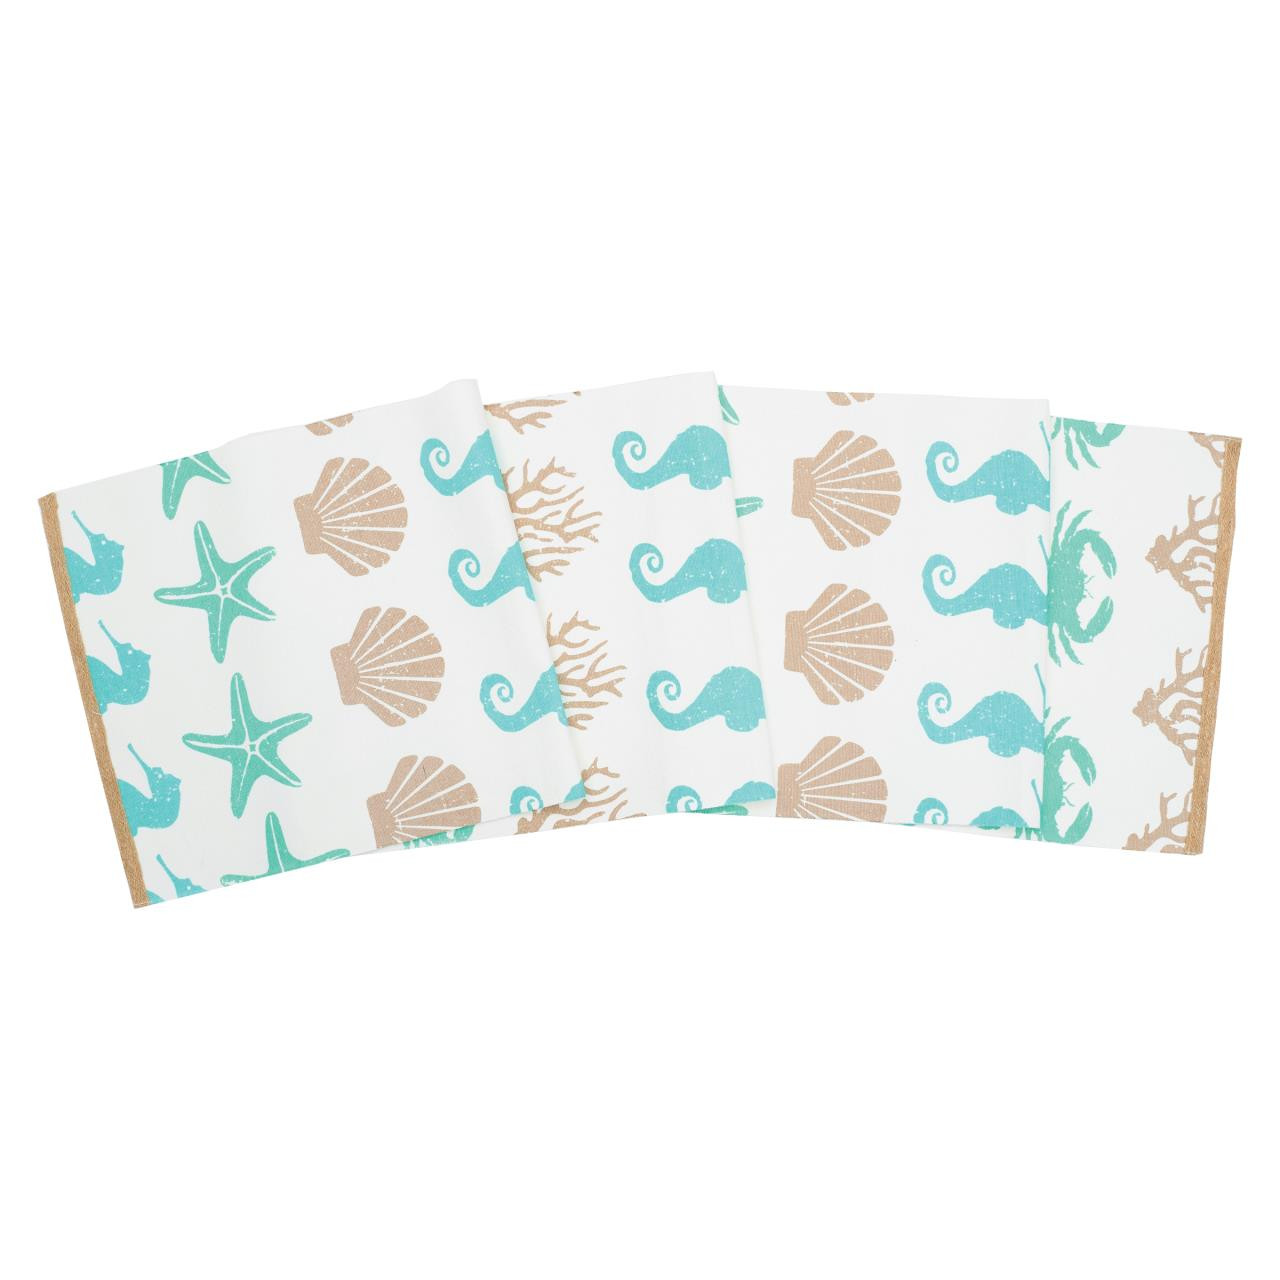 By The Sea Table Runner - 008246803782